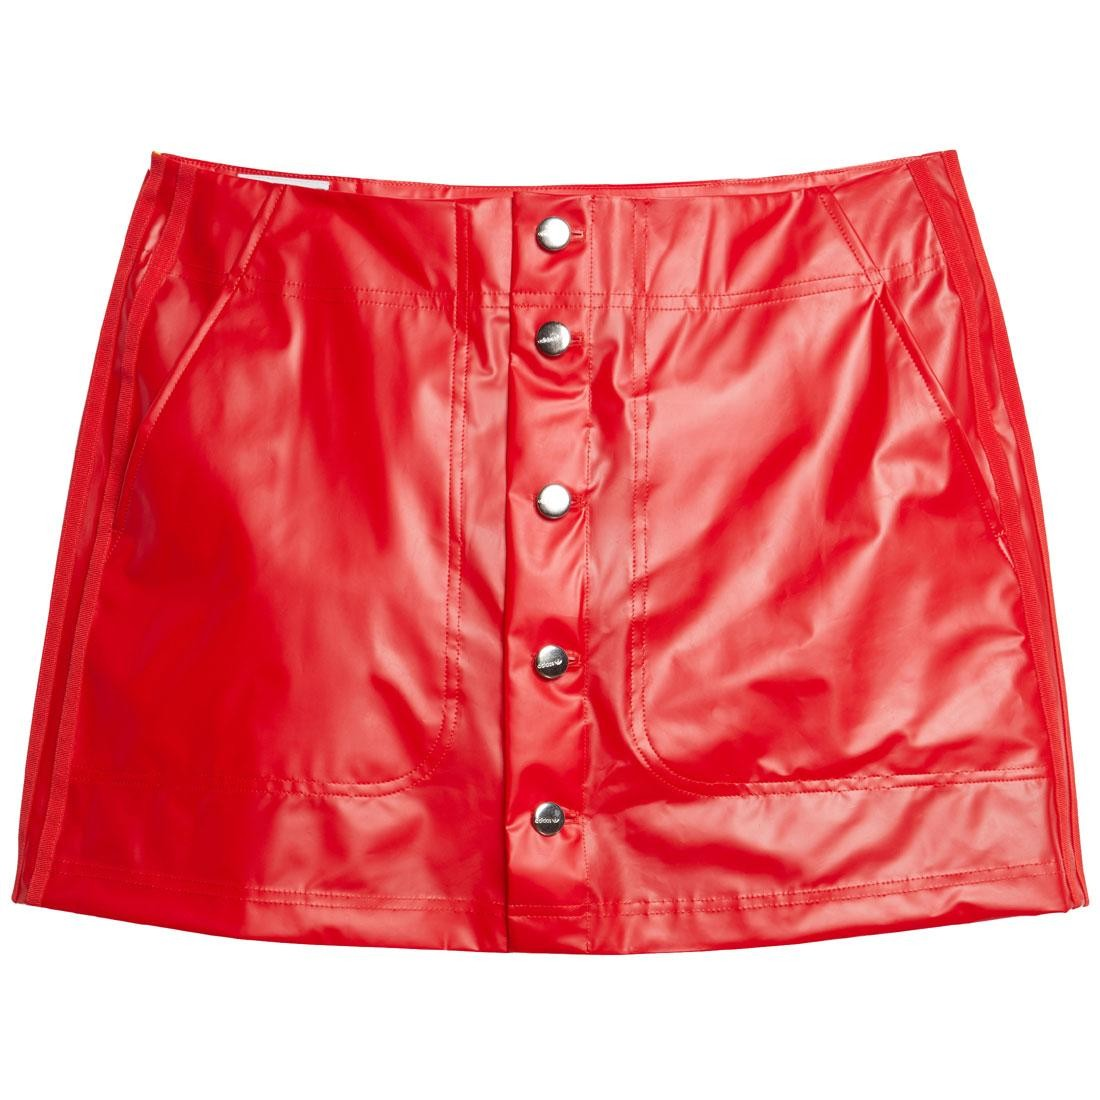 Adidas x Fiorucci Women Kiss Mini Skirt (red)